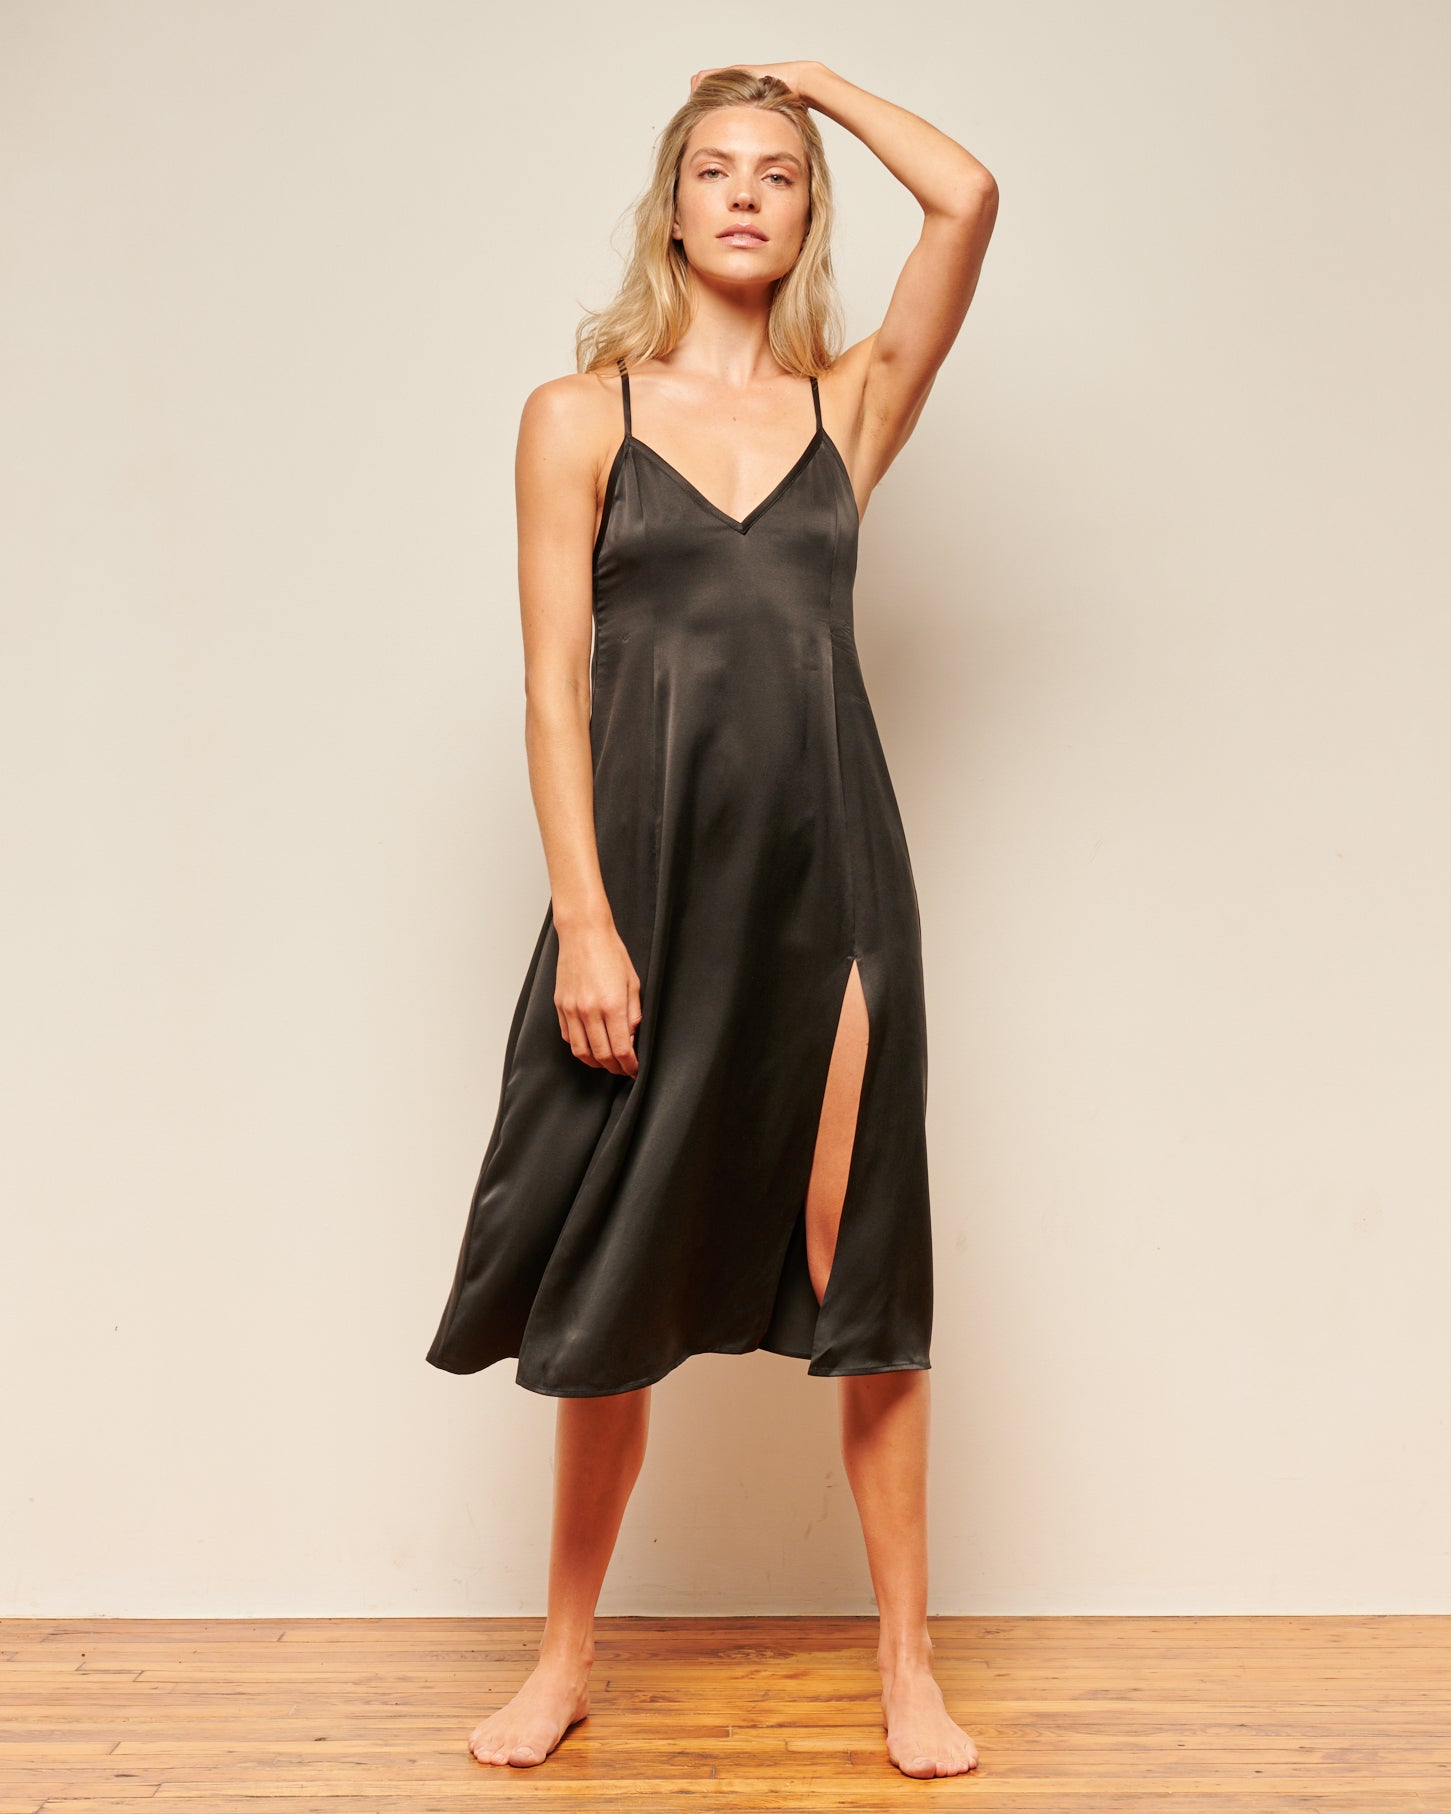 Chateau Nightgown Black